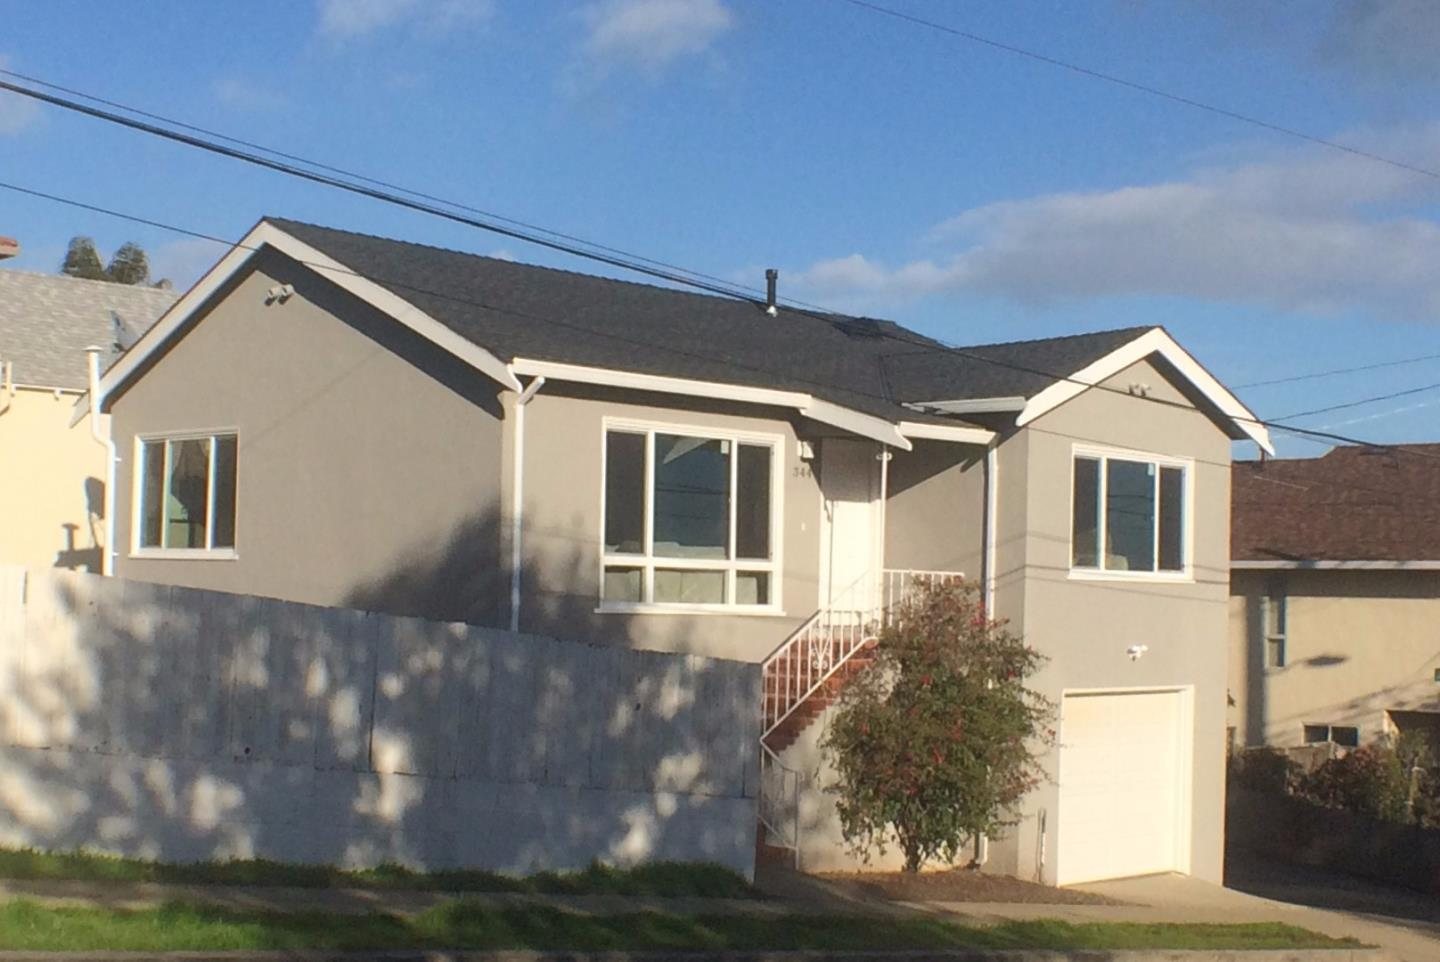 344 Aspen Ave, South San Francisco, CA